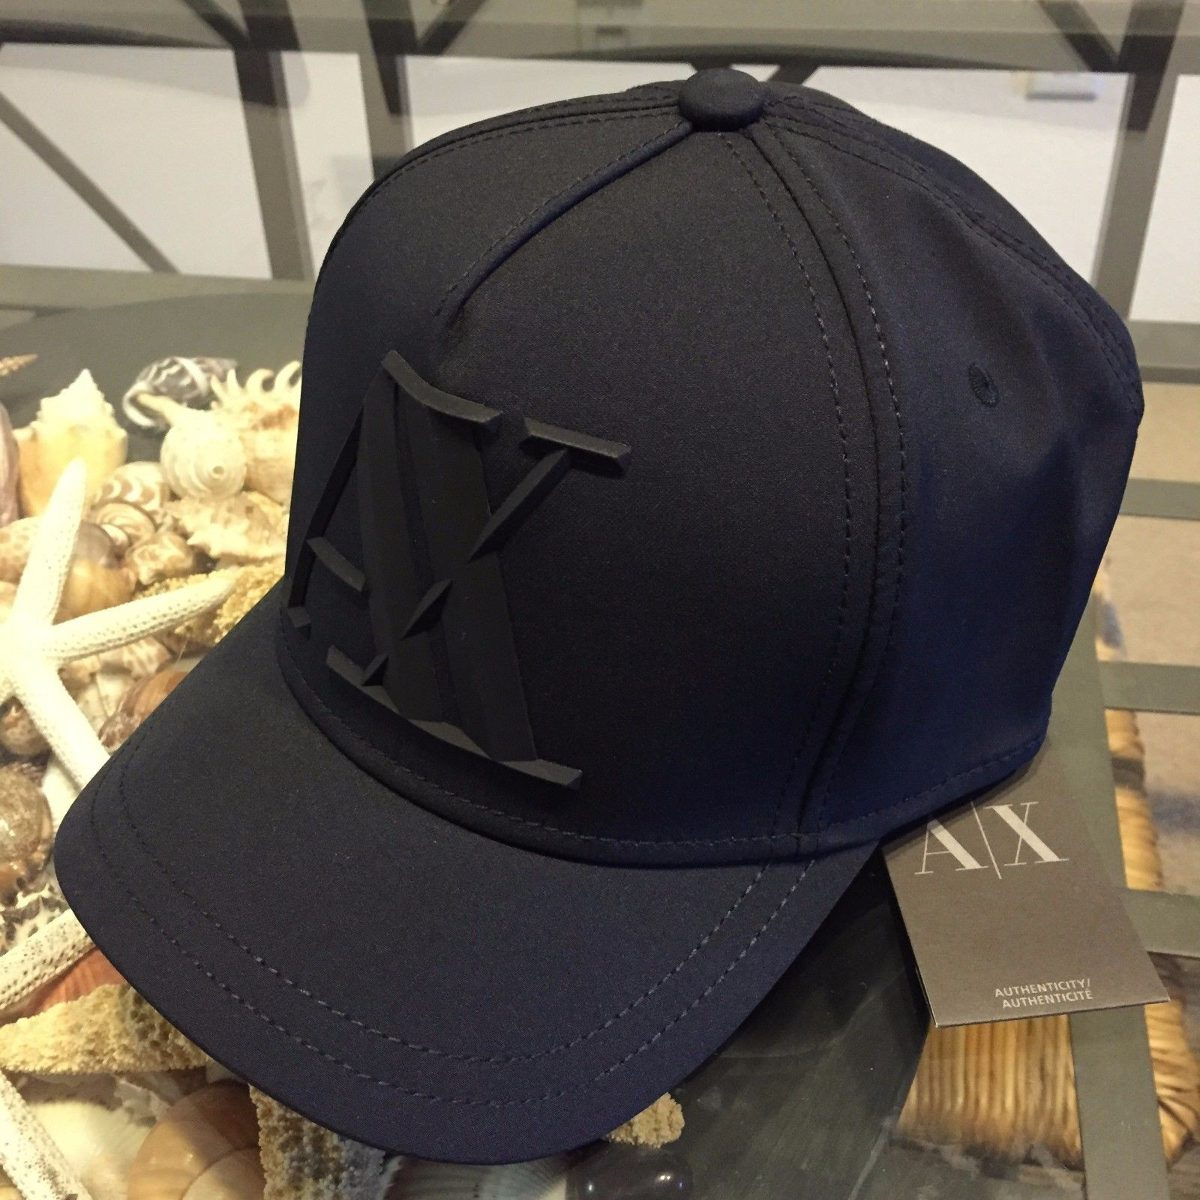 gorra armani exchange black baseball bajo pedidoexkarg 304801  MLA20408500292 092015 F square false 51a09183819